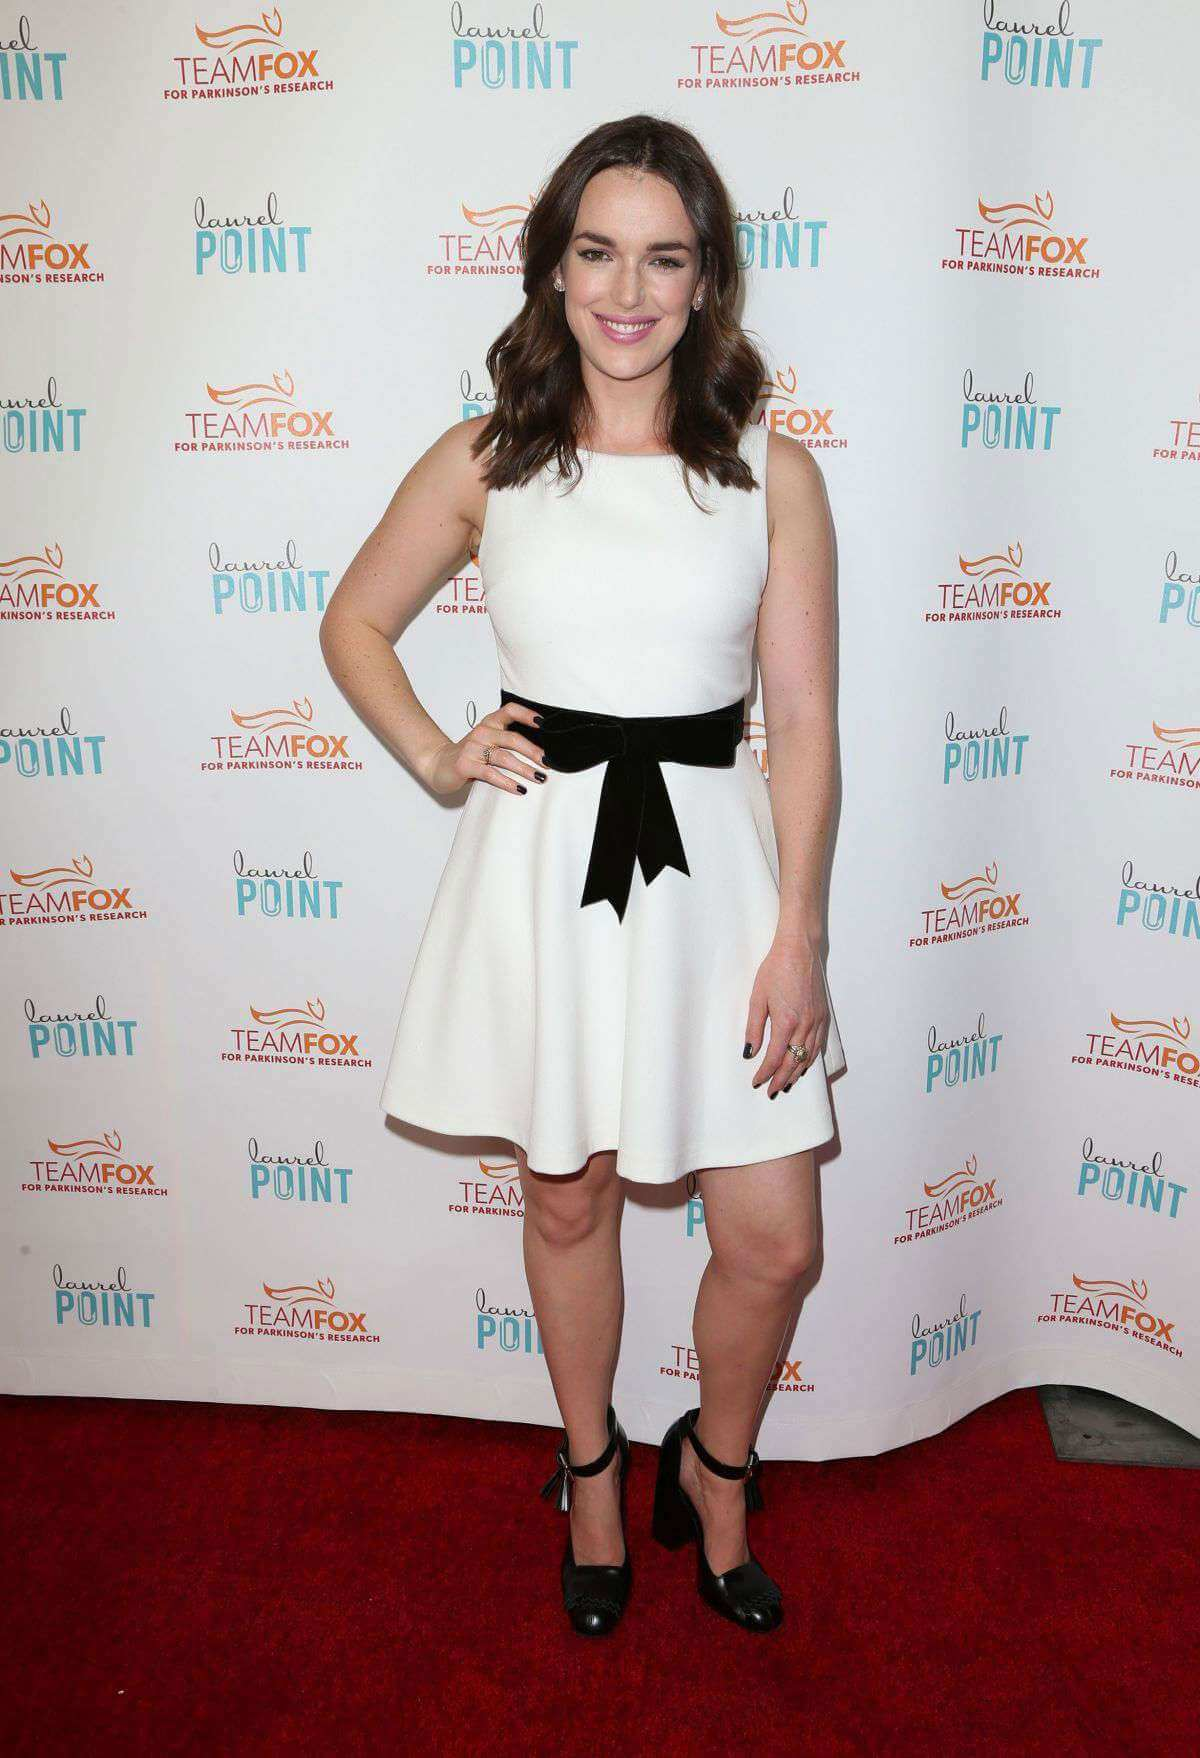 elizabeth-henstridge-attends-raising-bar-end-parkinsons-event-003